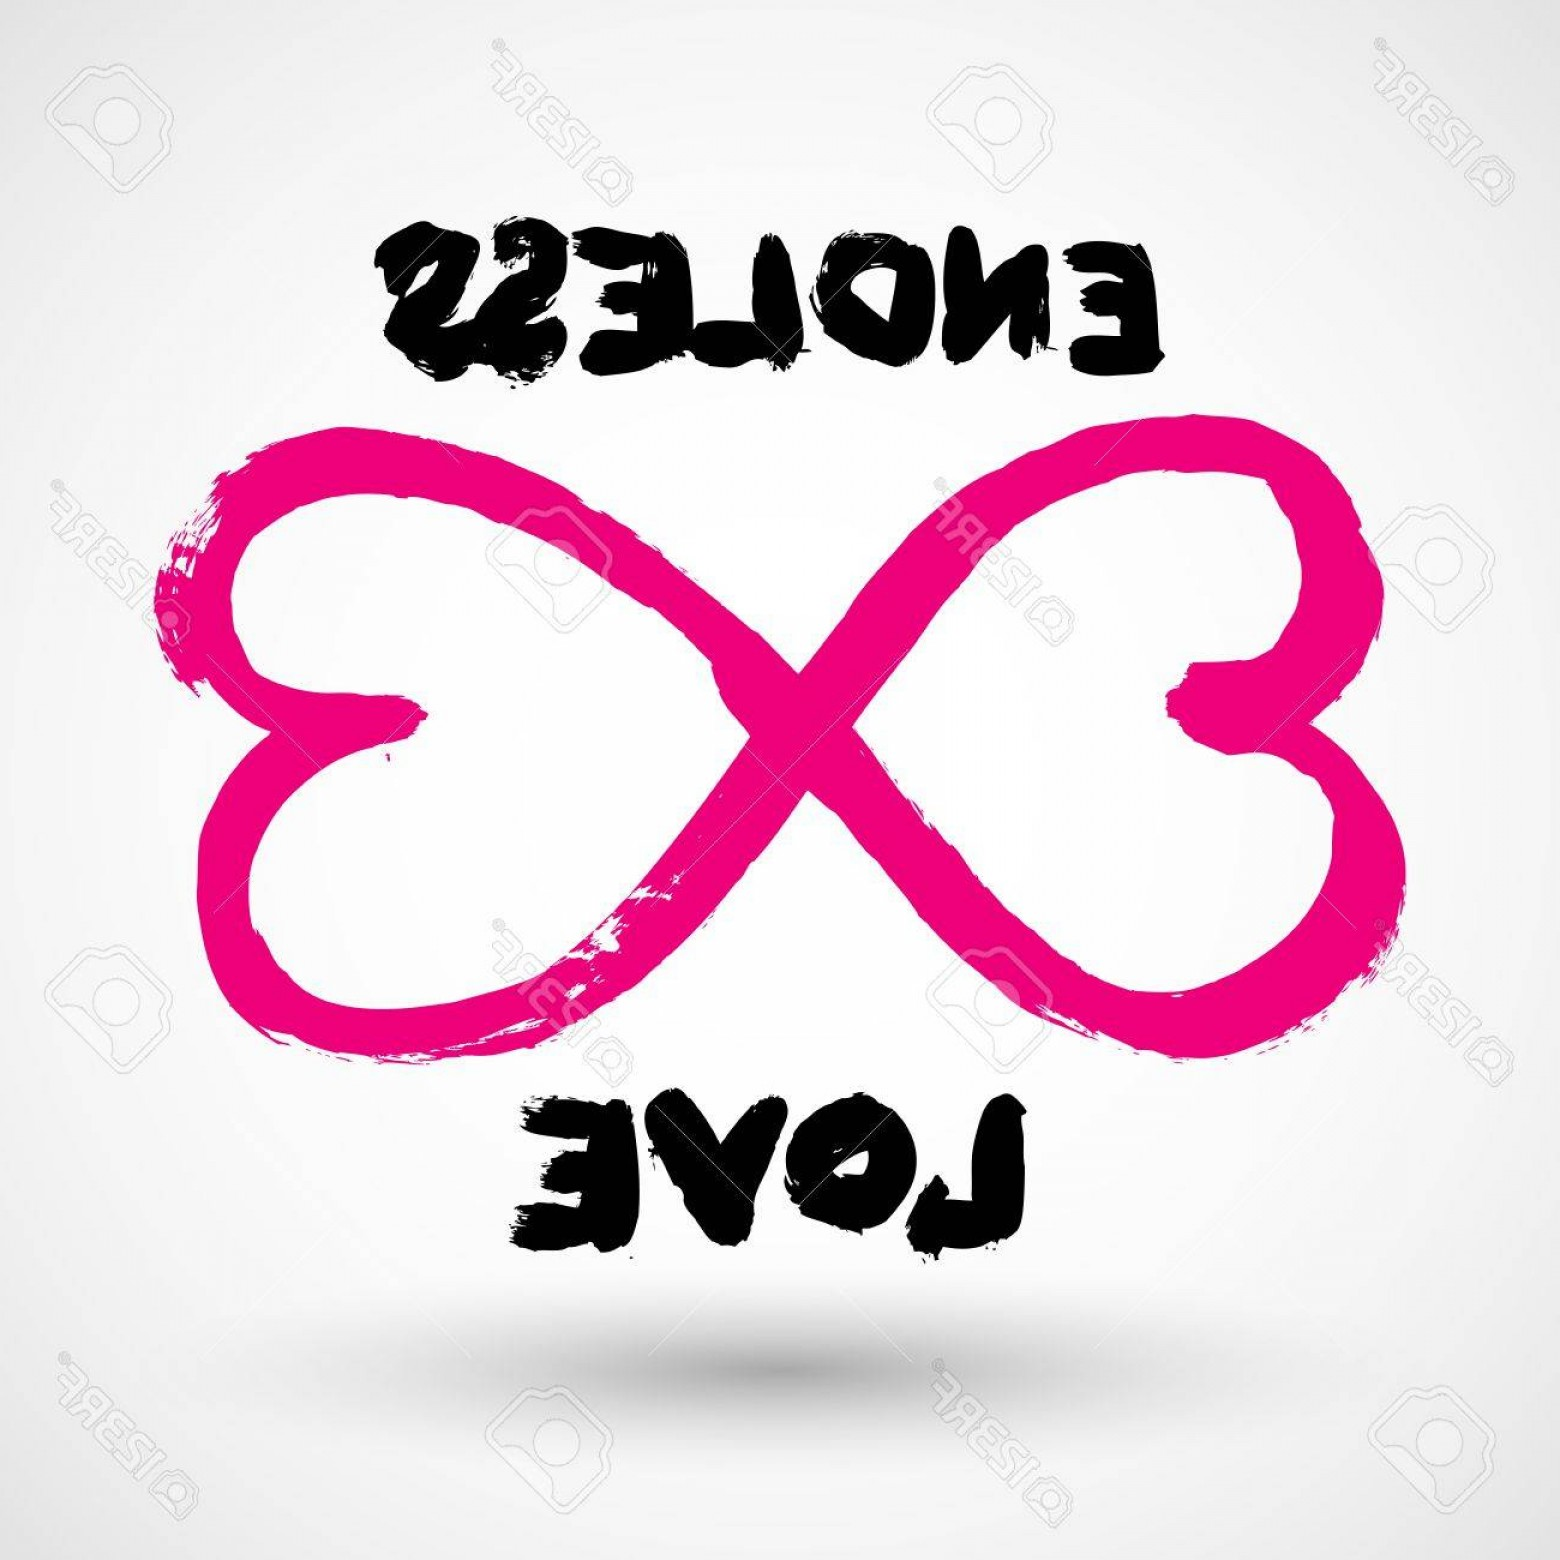 Infinity Grunge Heart Vector: Photostock Vector Endless Love Grunge Infinity Symbol